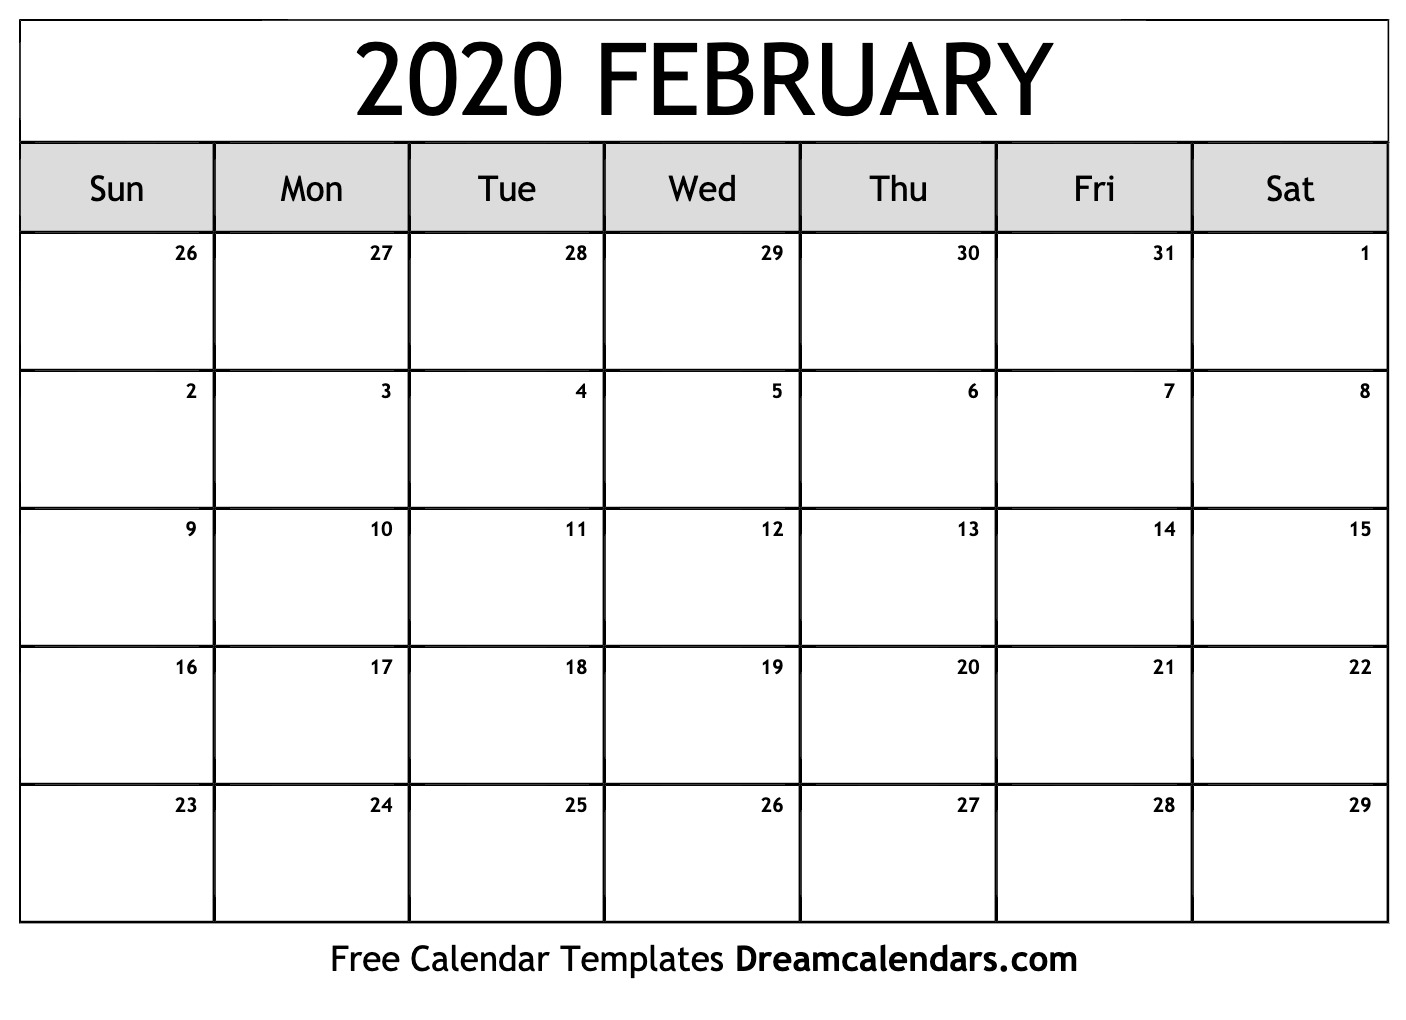 February 2020 Calendar Poretty Printable February 2020 Calendar